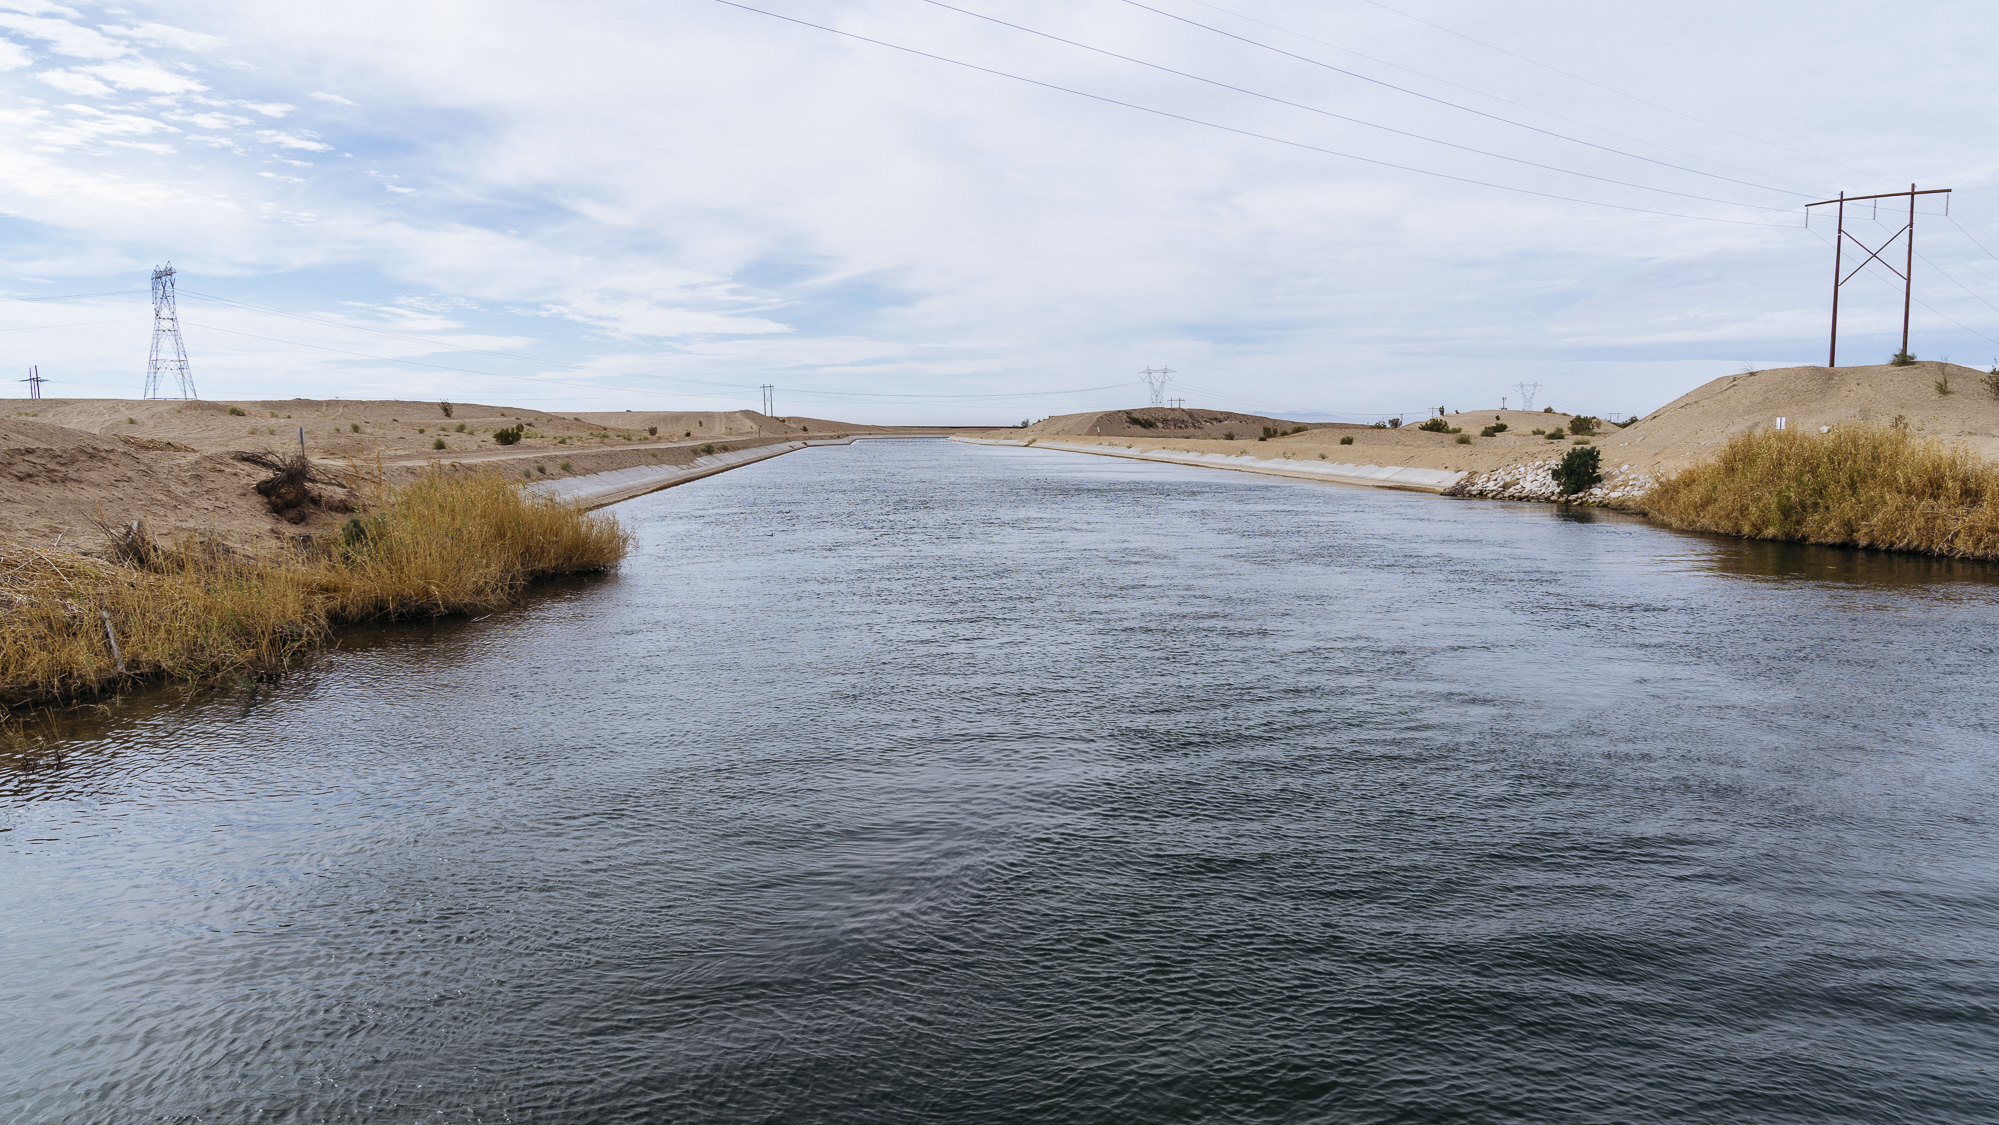 IMAGE CAPTION:  The All American Canal is America's deadliest body of water. The largest irrigation canal in the world, it serves as an effective moat for migrants as it runs alongside the border wall in Calexico, California.